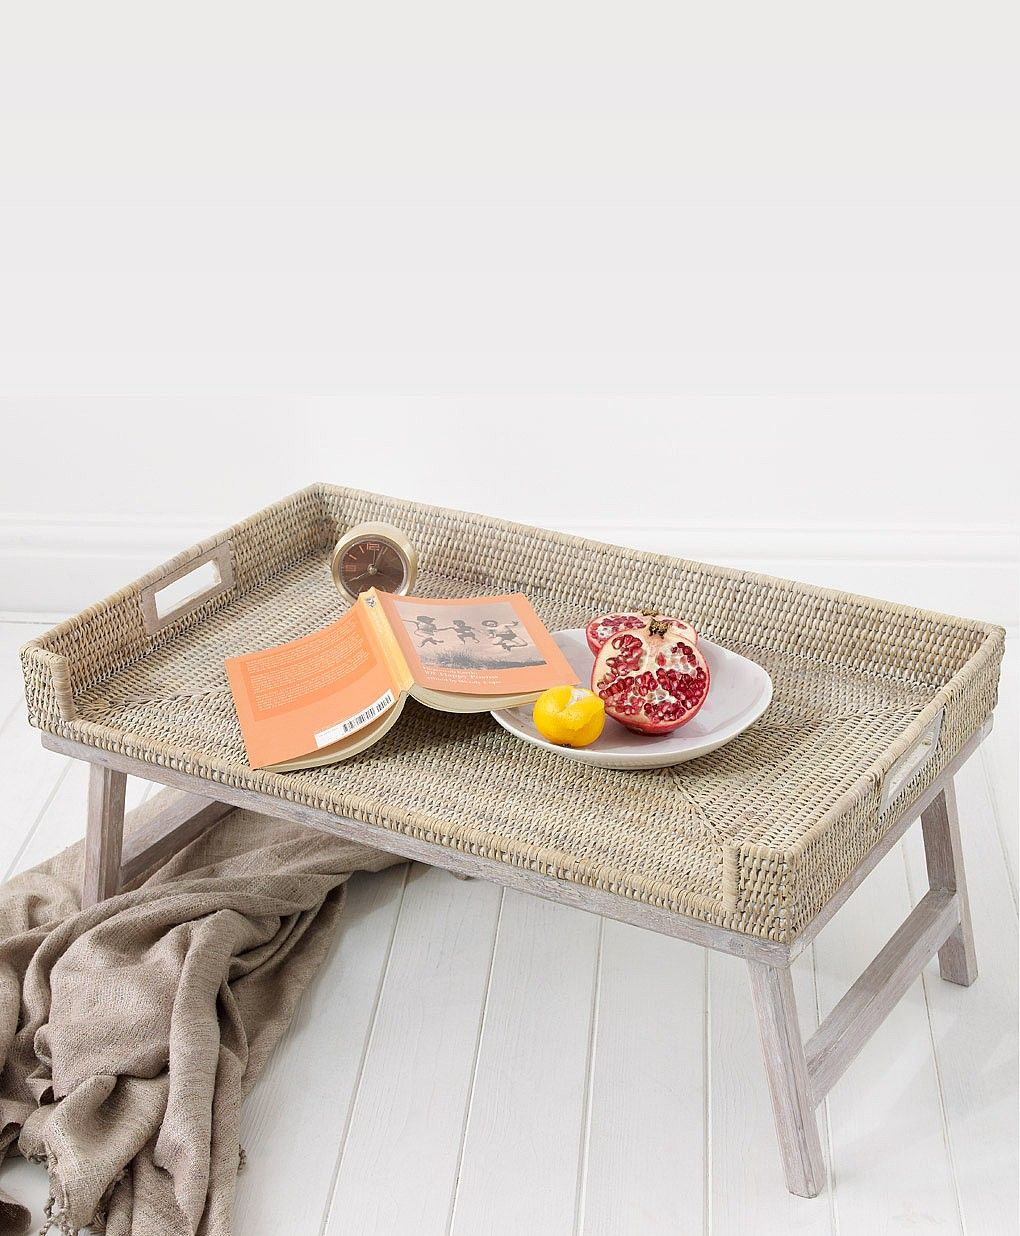 Breakfast Trays For Bed Fascinating Rattan Breakfast Tray  Breakfast Tray Rattan And Trays Decorating Inspiration